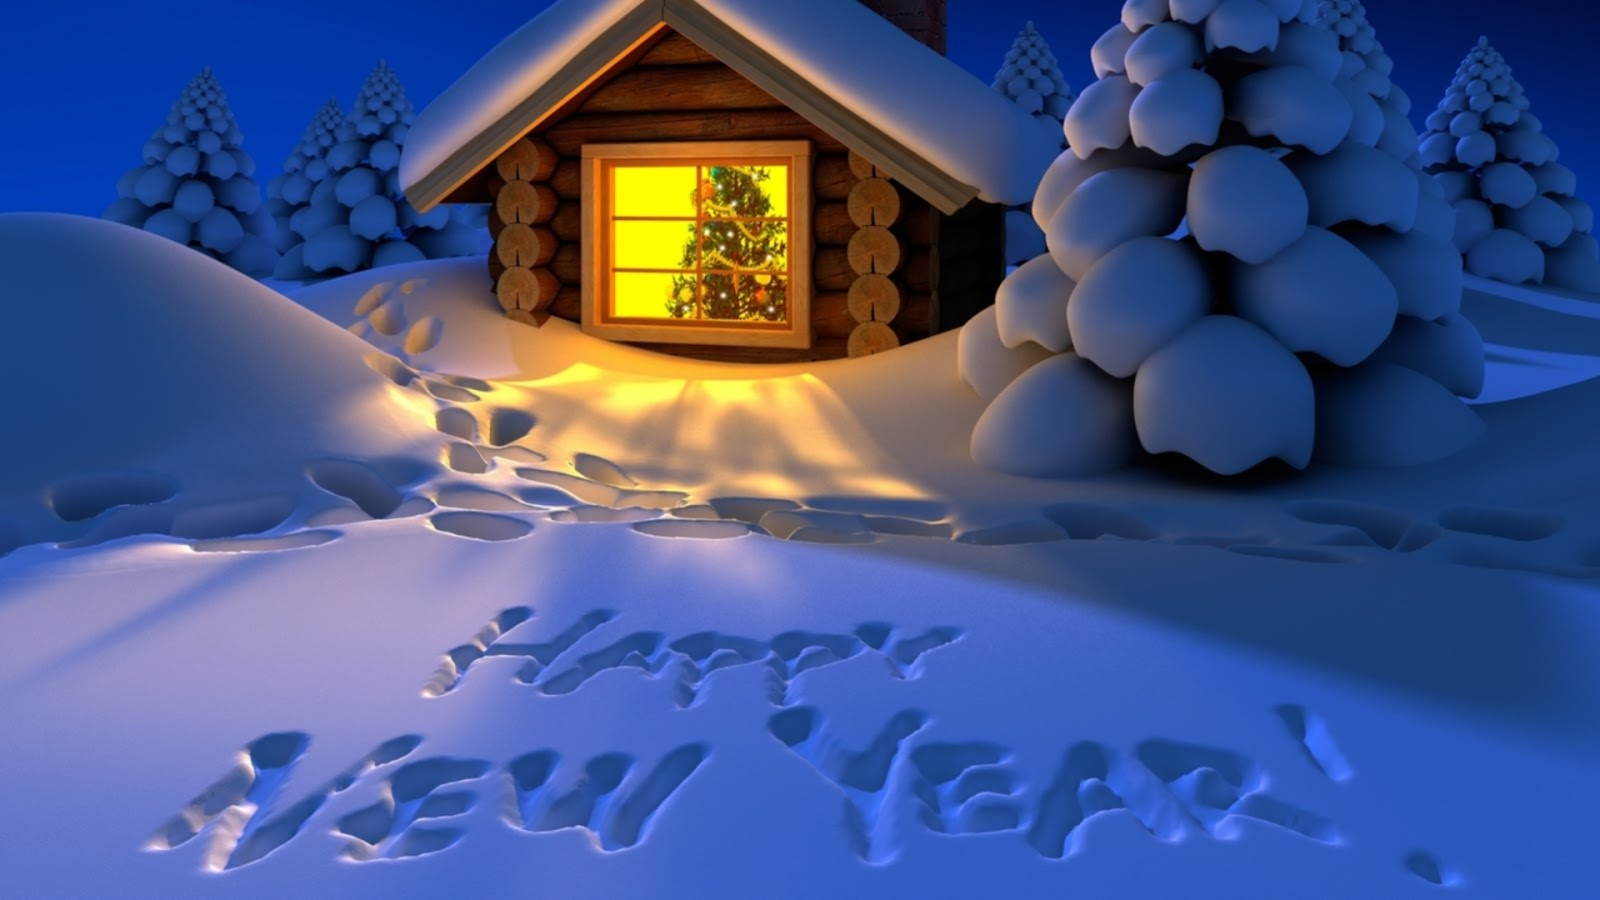 Happy-New-Year-HD-Wallpaper-